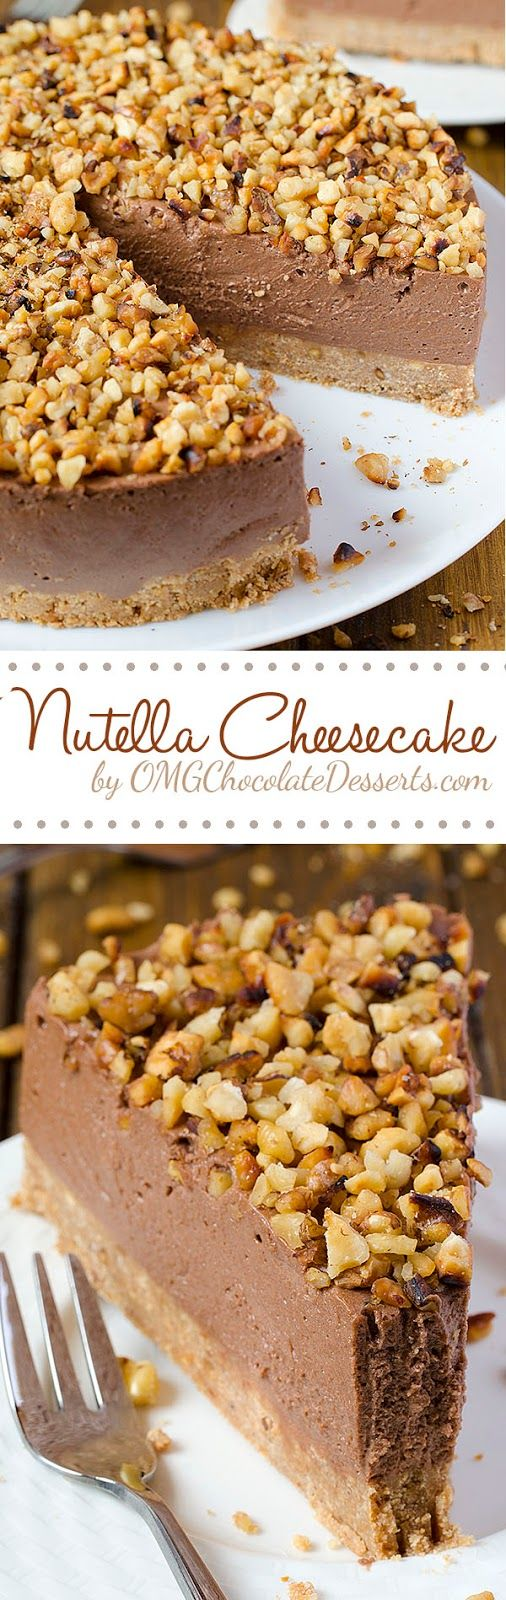 I tweaked this recipe a bit: I used two packages of cream cheese, a full 13 oz. jar of Nutella, no sugar, one egg, and a tsp. of vanilla. I ...